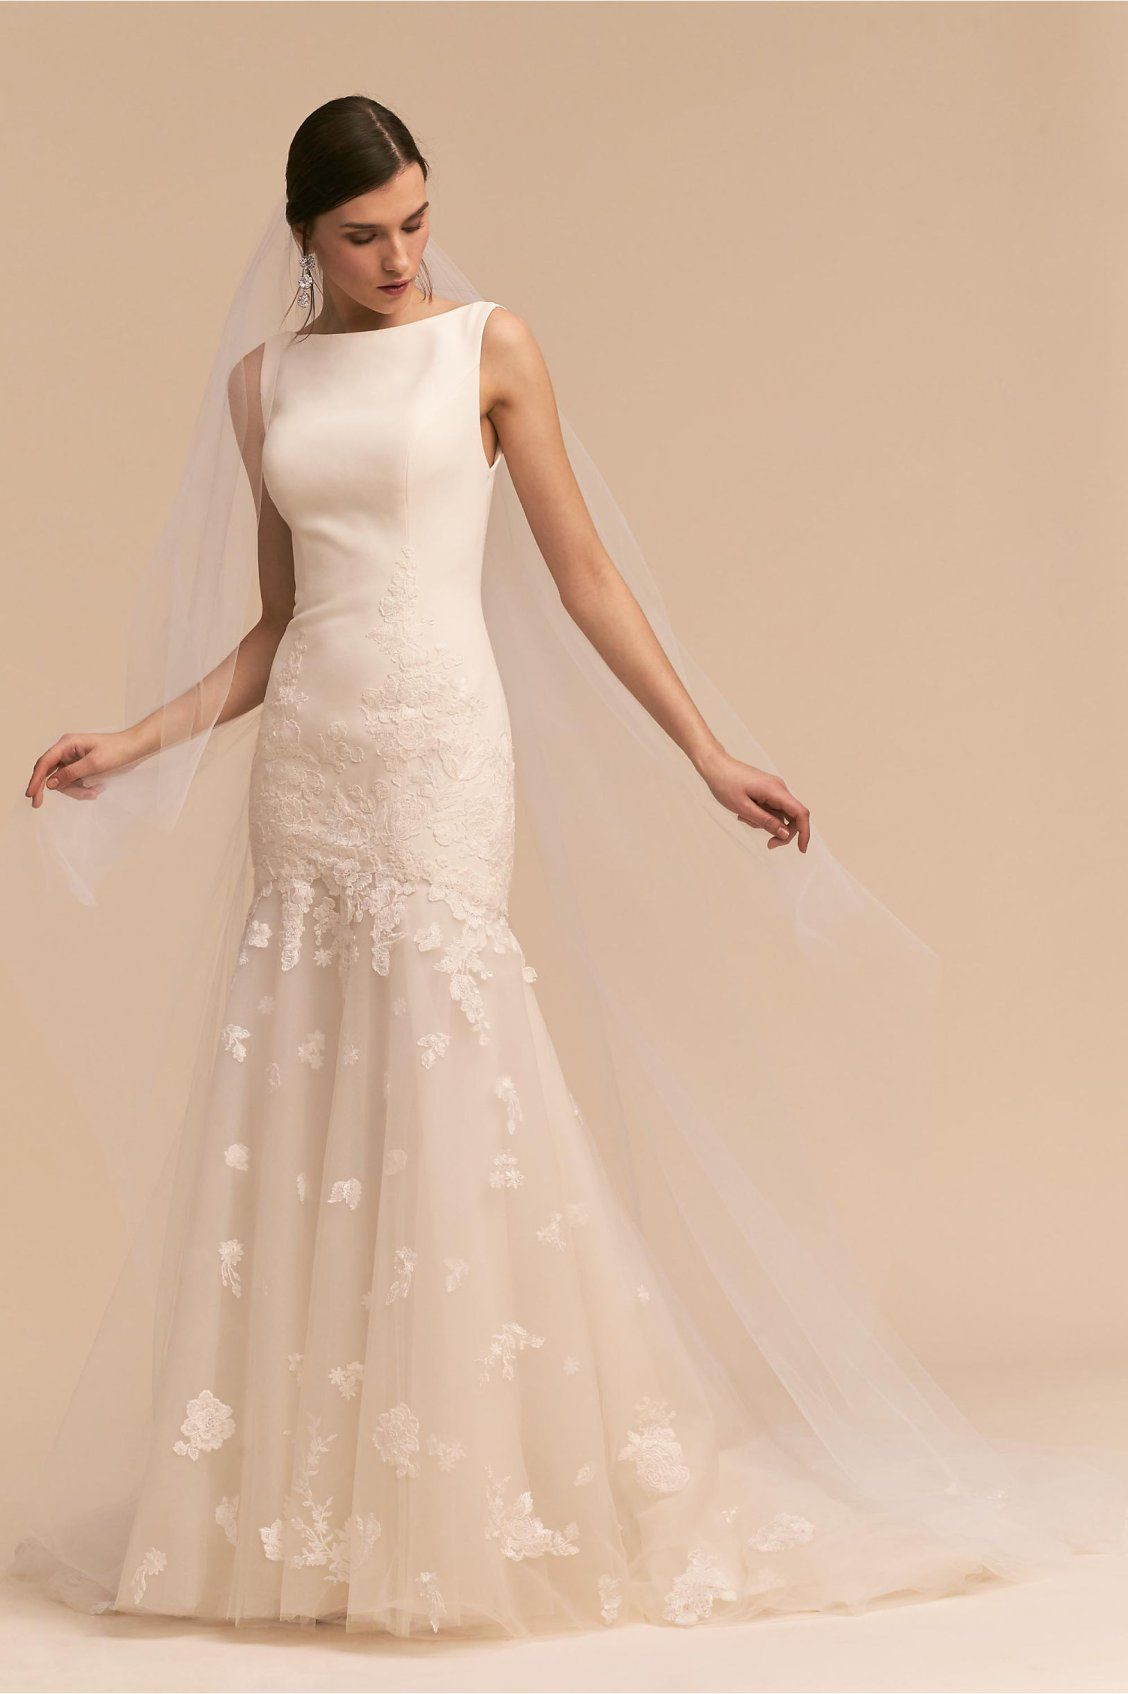 Tuscany Gown from BHLDN | Brautkleider | Pinterest | Tuscany, Gowns ...